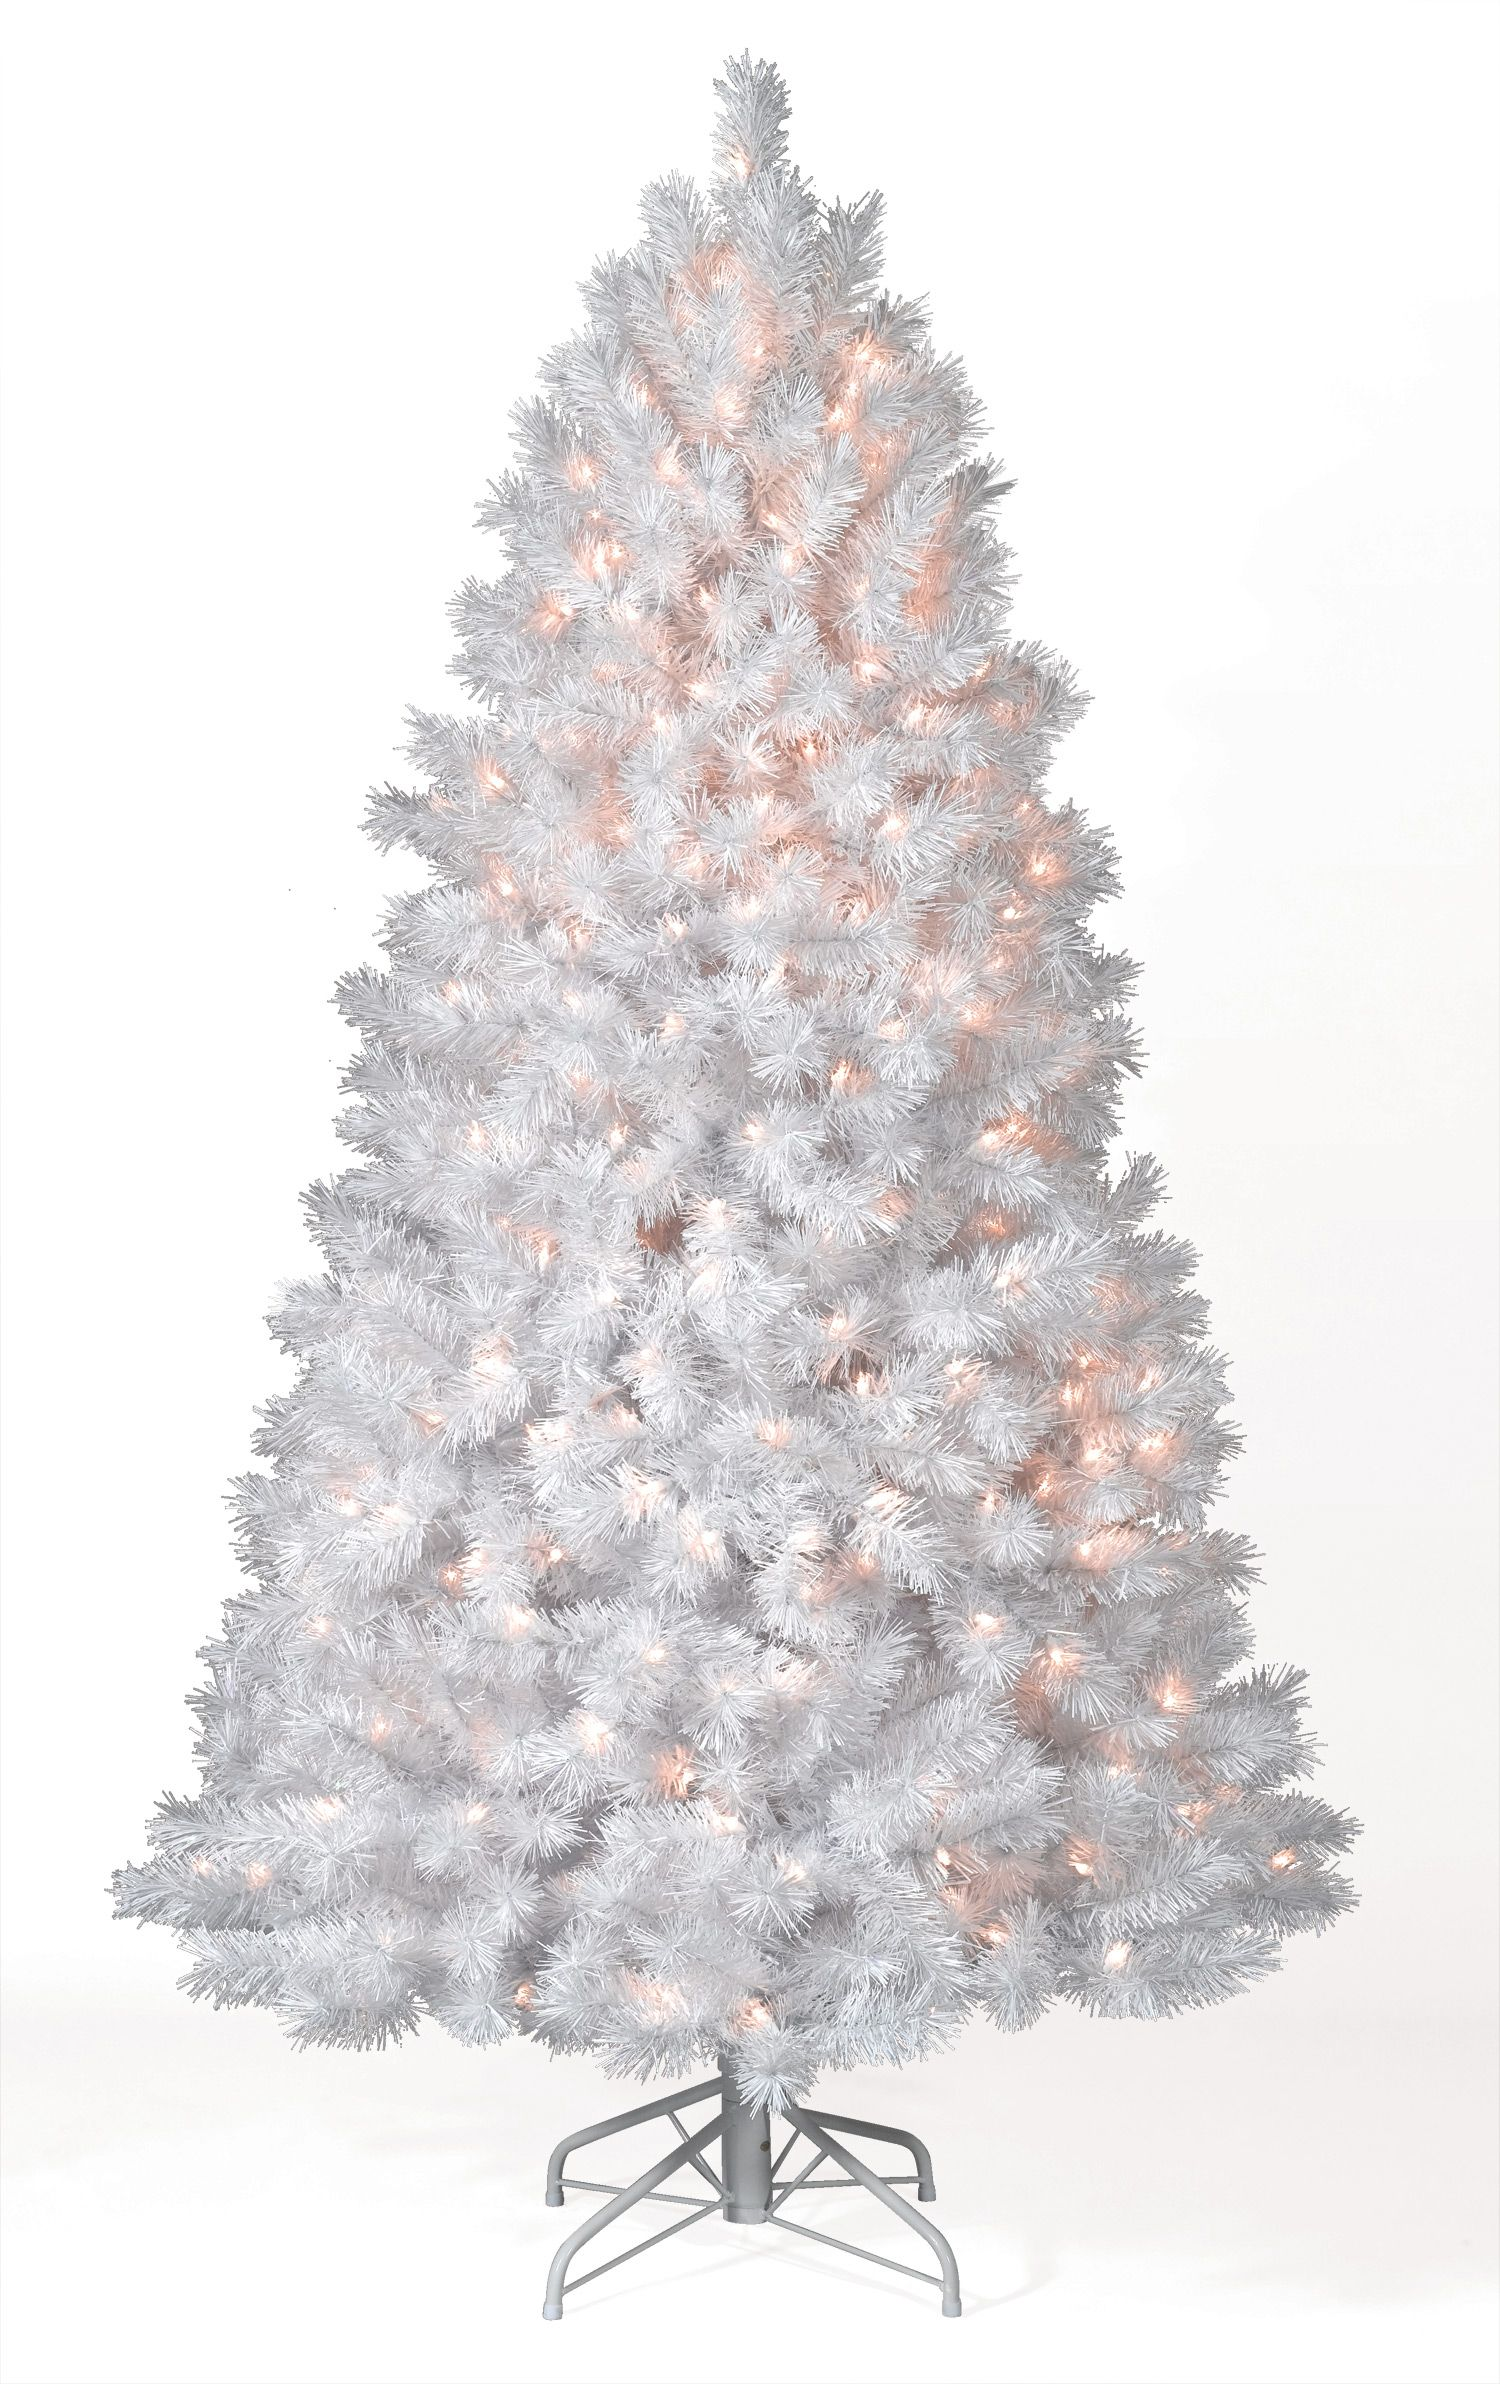 Superior 8 Foot Shimmering White Artificial Christmas Trees With Multi Lights